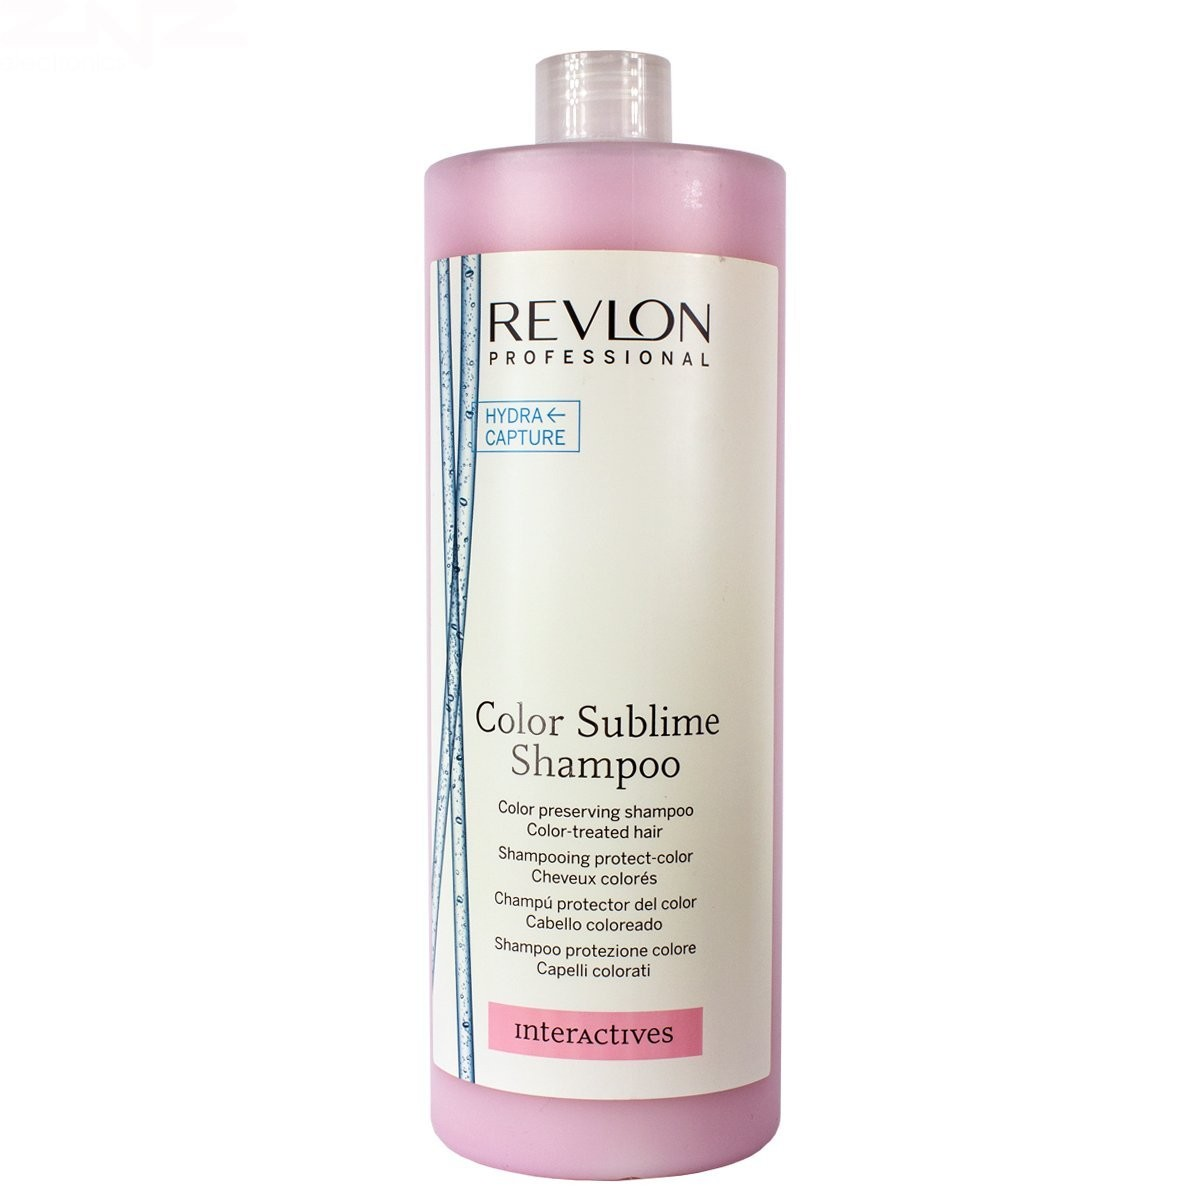 Illustration Shampooing Color Sublime Revlon Interactives 1250ml